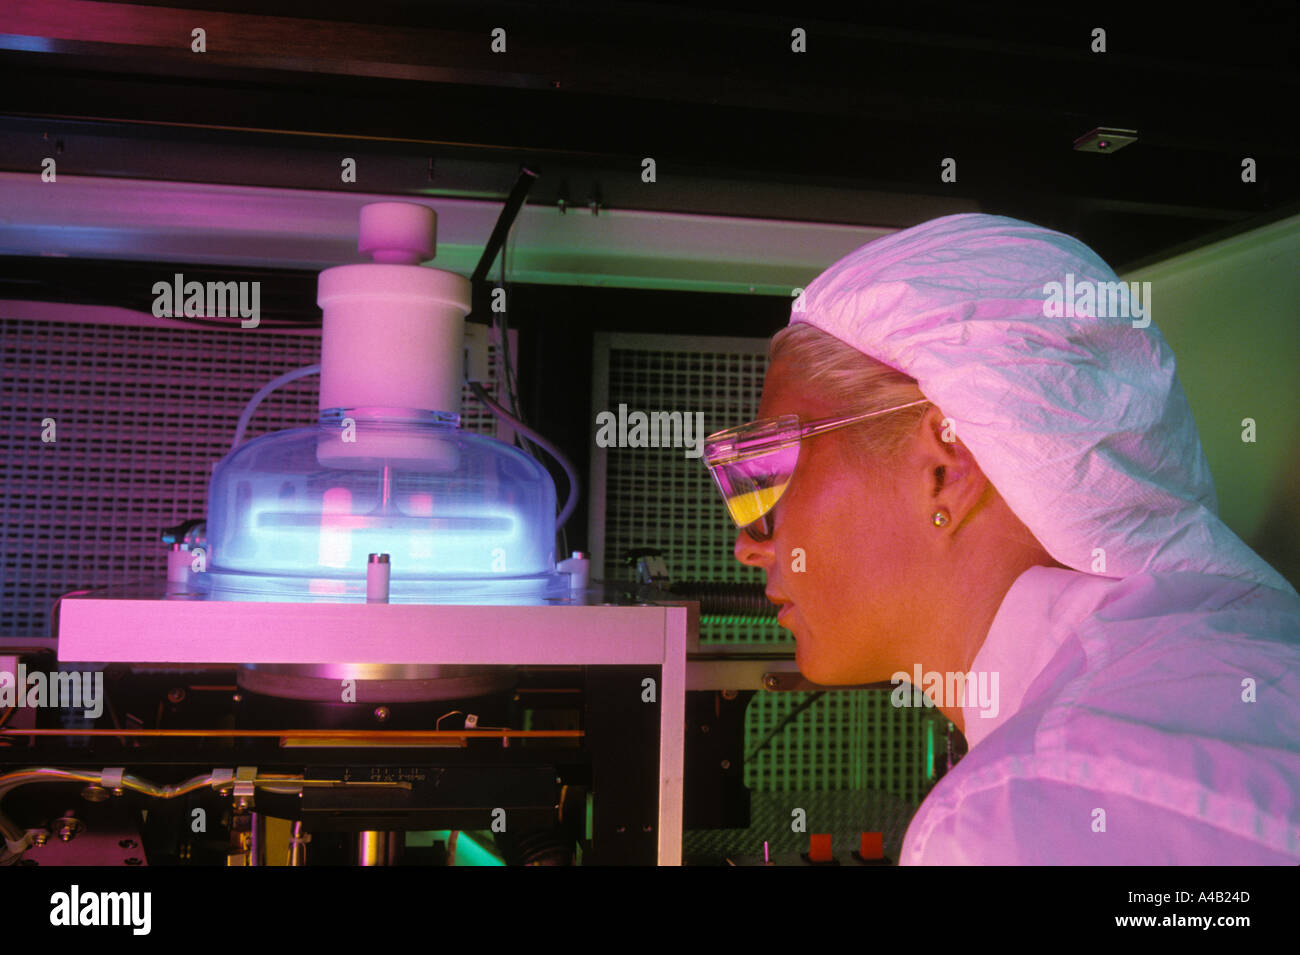 female technician observing silicon wafer undergoing dry plasma etching process in clean room